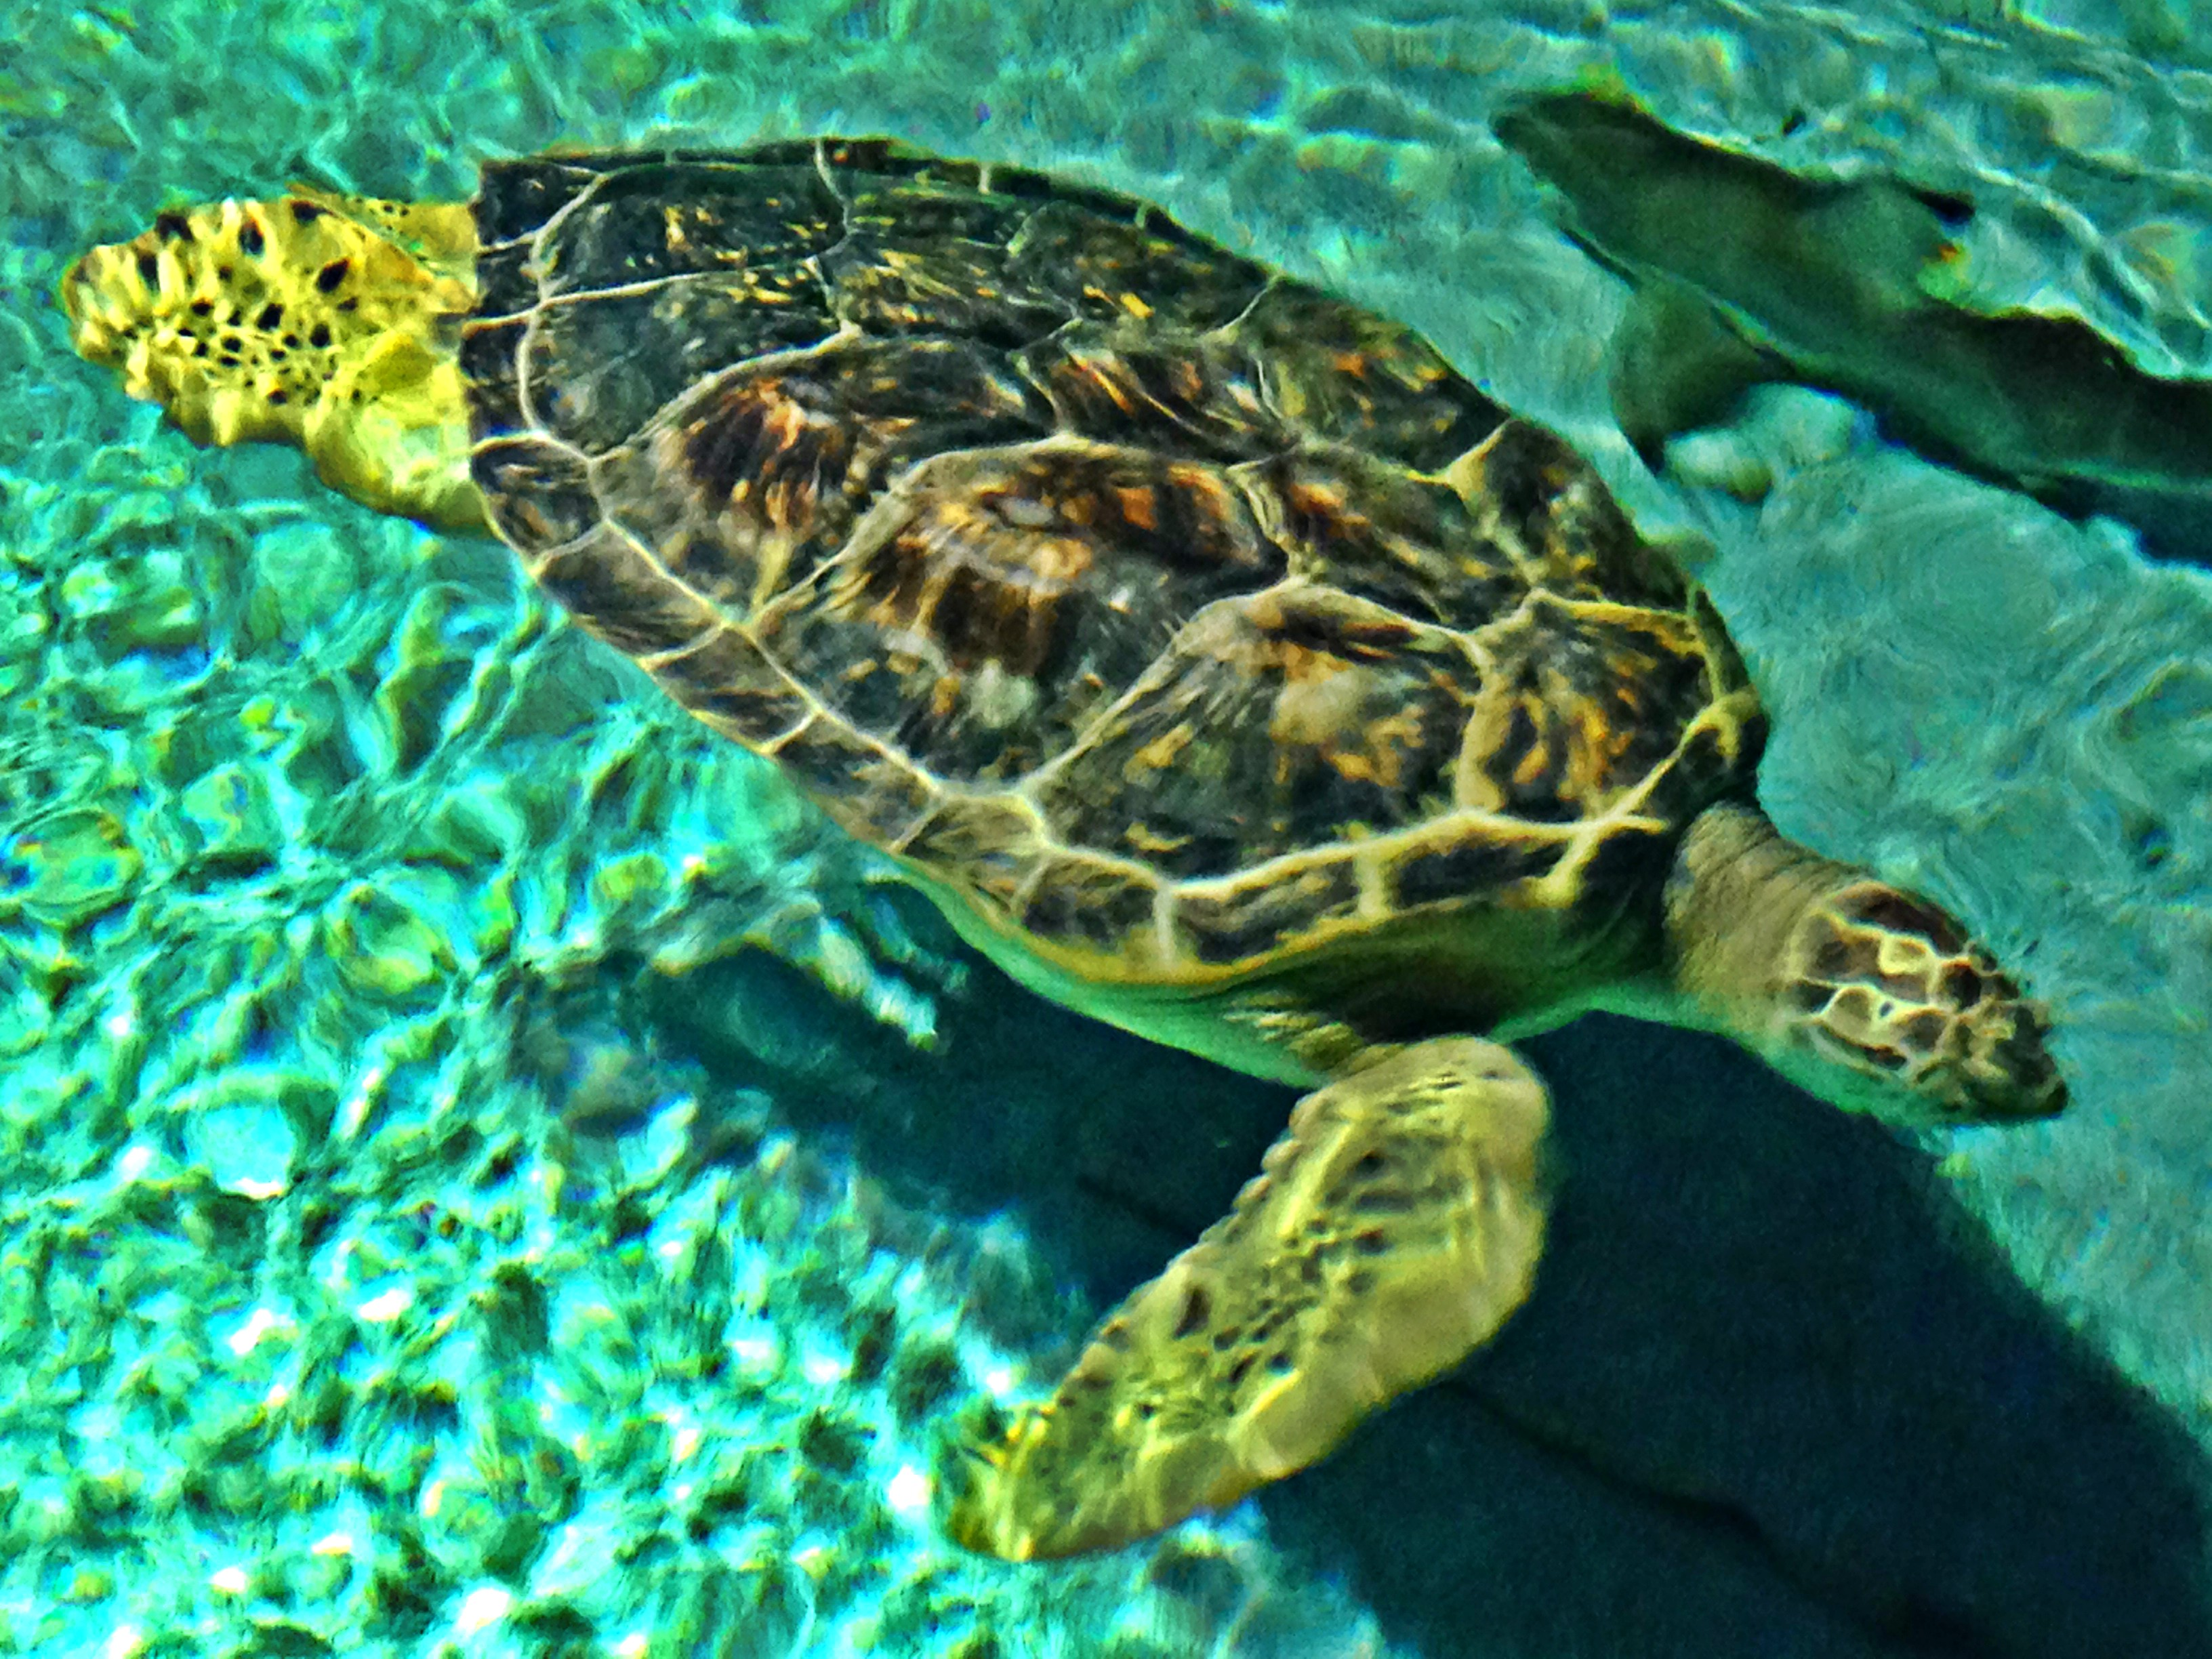 Rescue Turtle at the Baltimore Aquarium